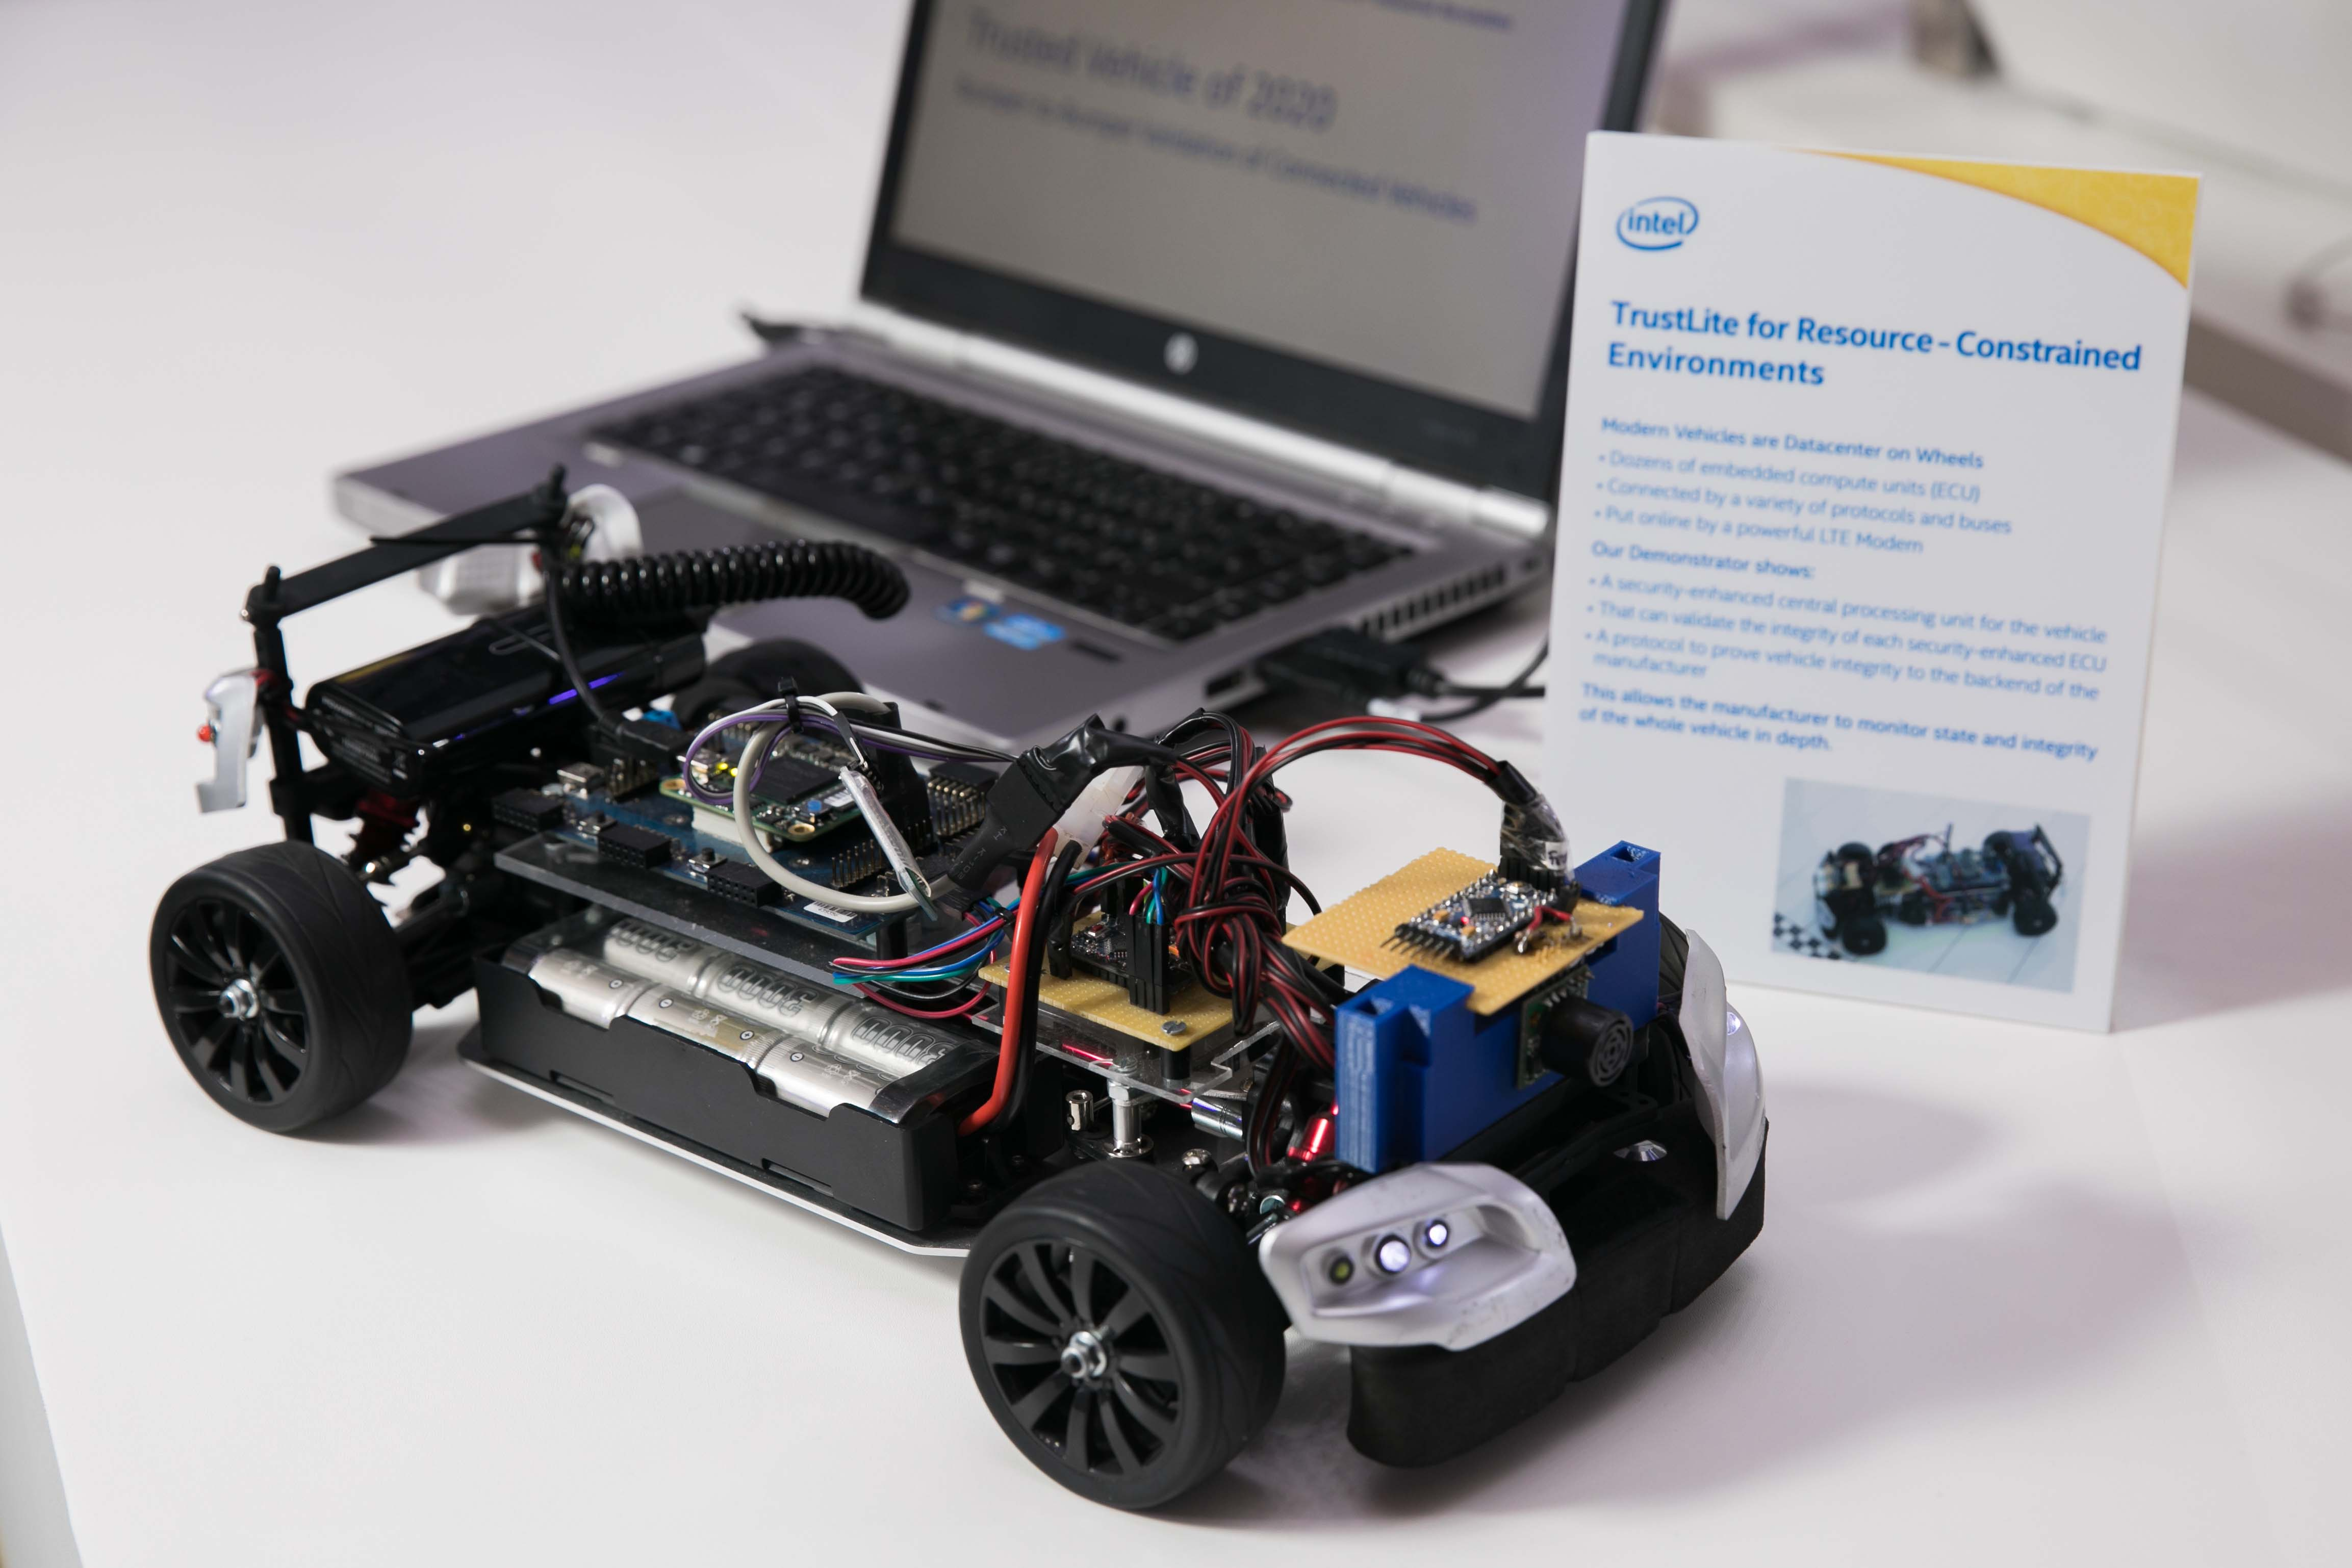 Intel News Photo_4_Trusted Vehicle of 2020